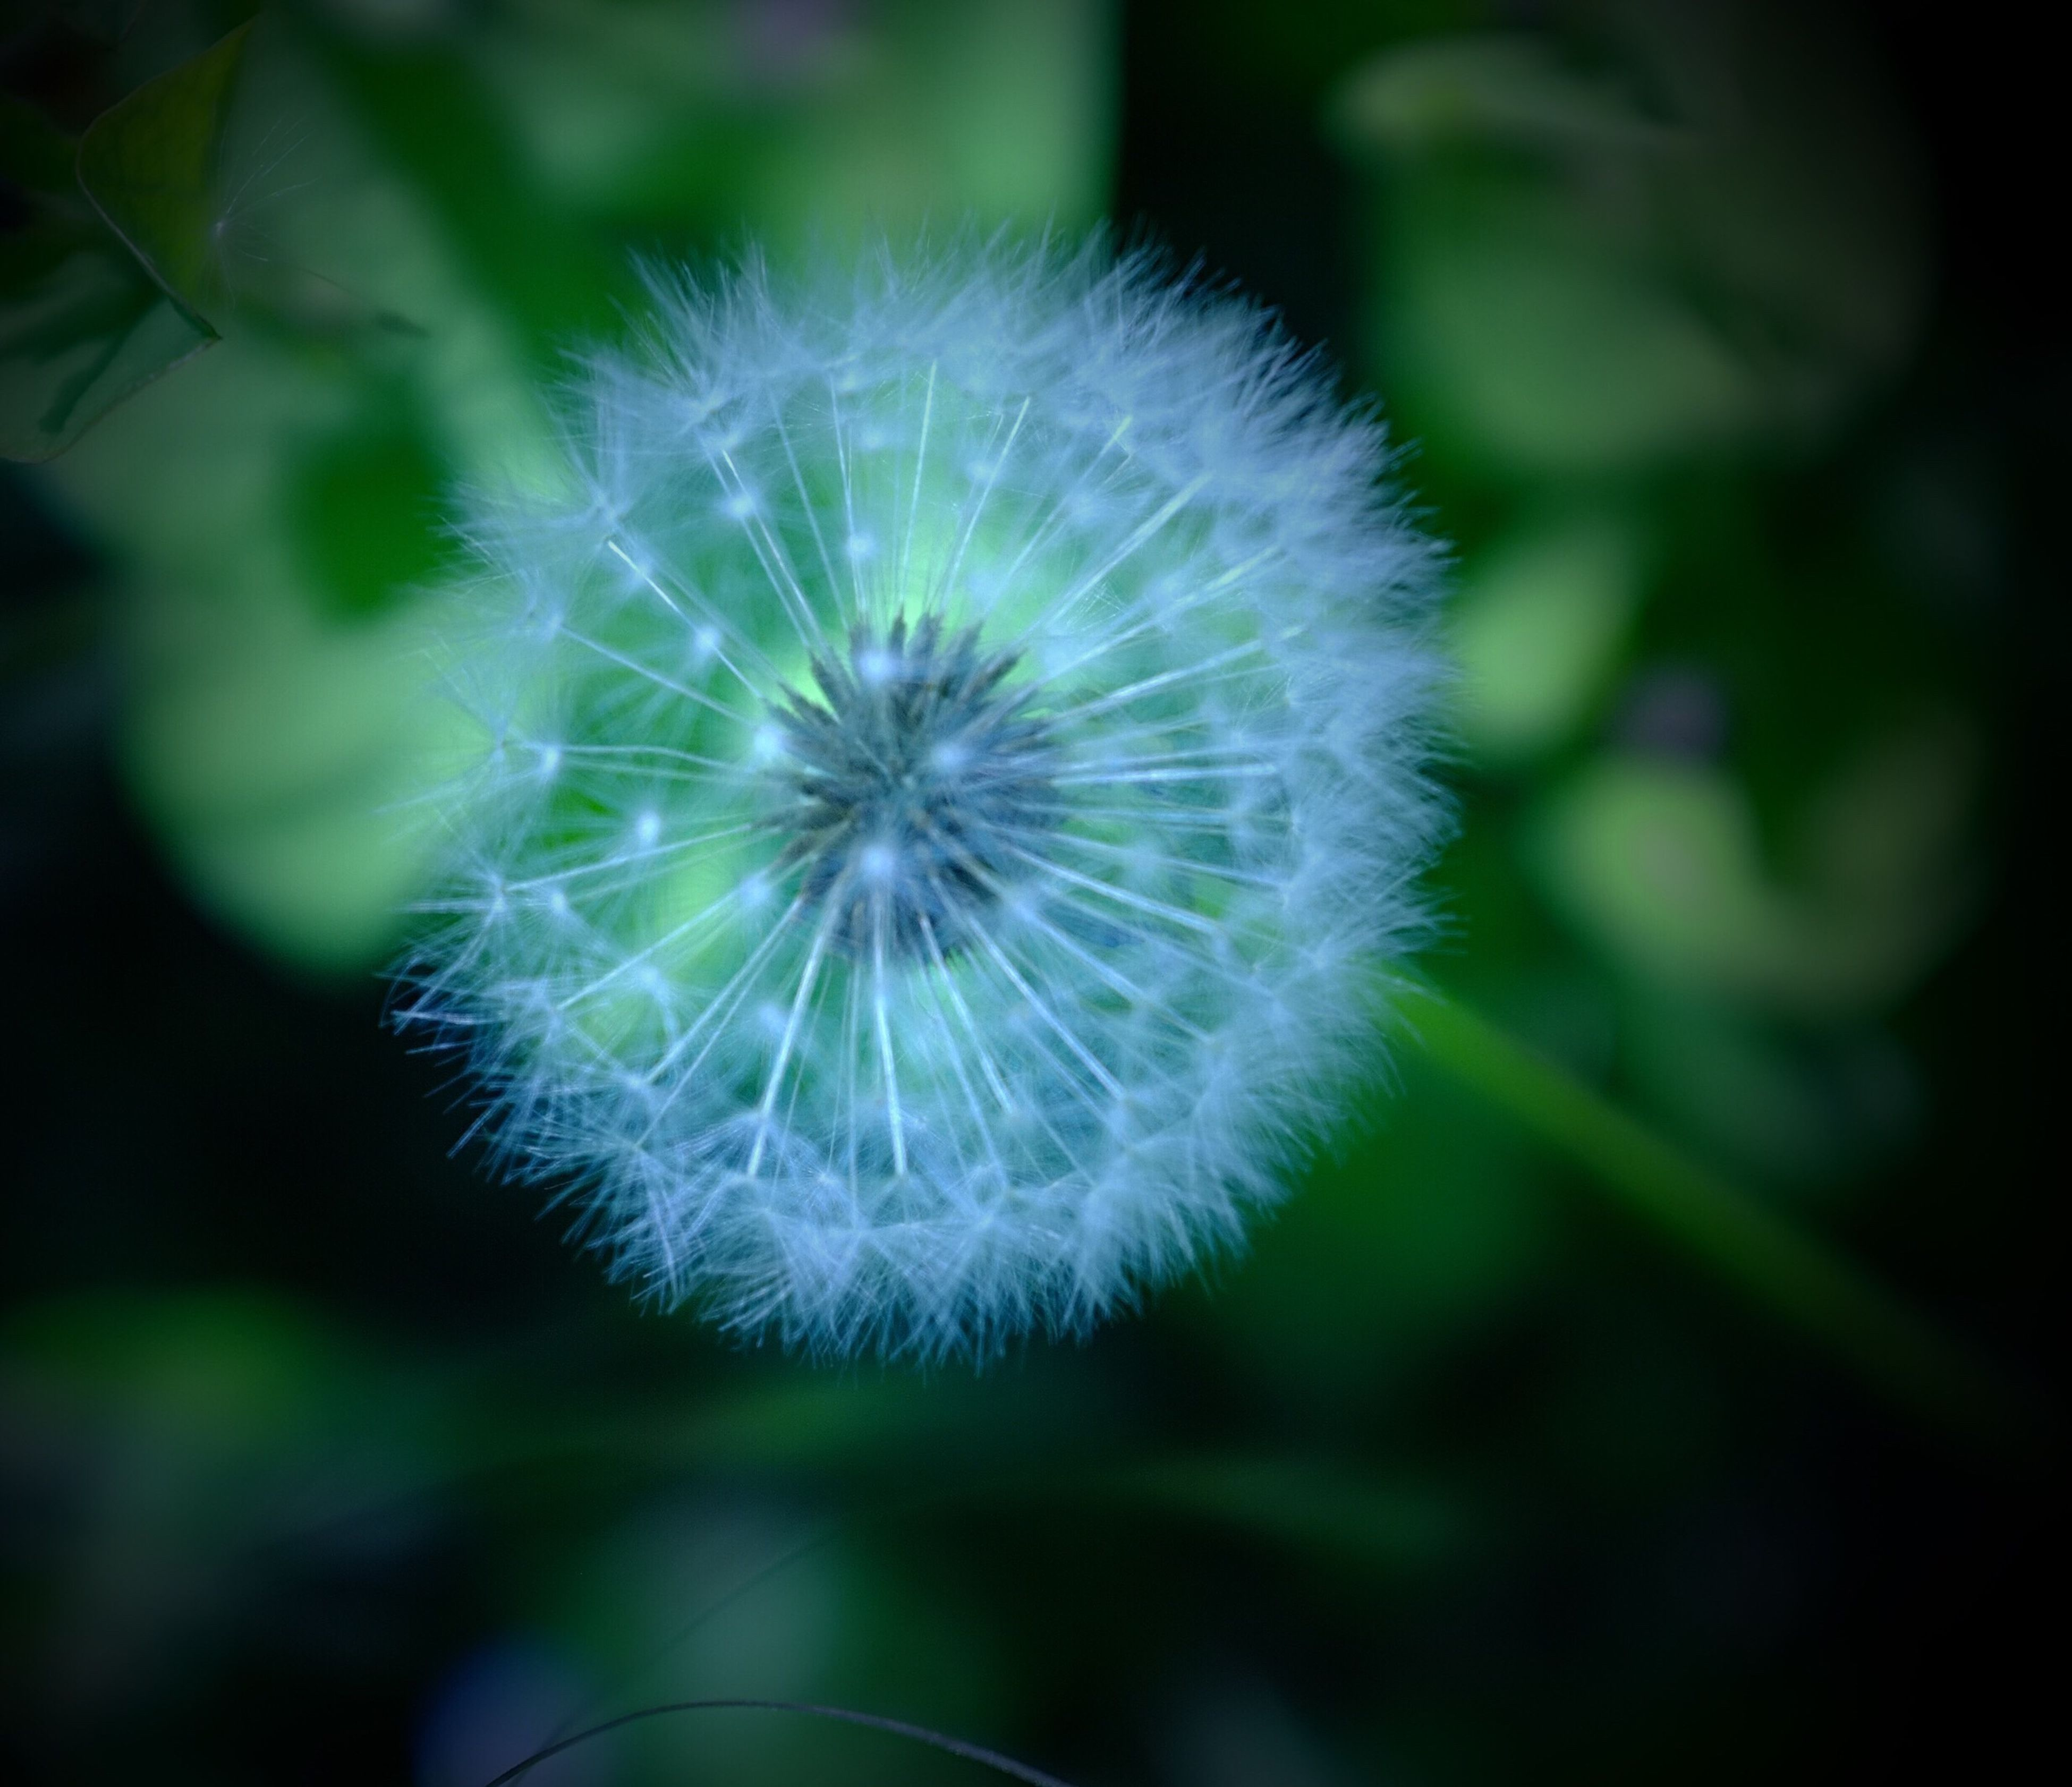 dandelion, flower, fragility, freshness, growth, flower head, close-up, focus on foreground, beauty in nature, single flower, nature, softness, white color, stem, uncultivated, wildflower, dandelion seed, plant, selective focus, in bloom